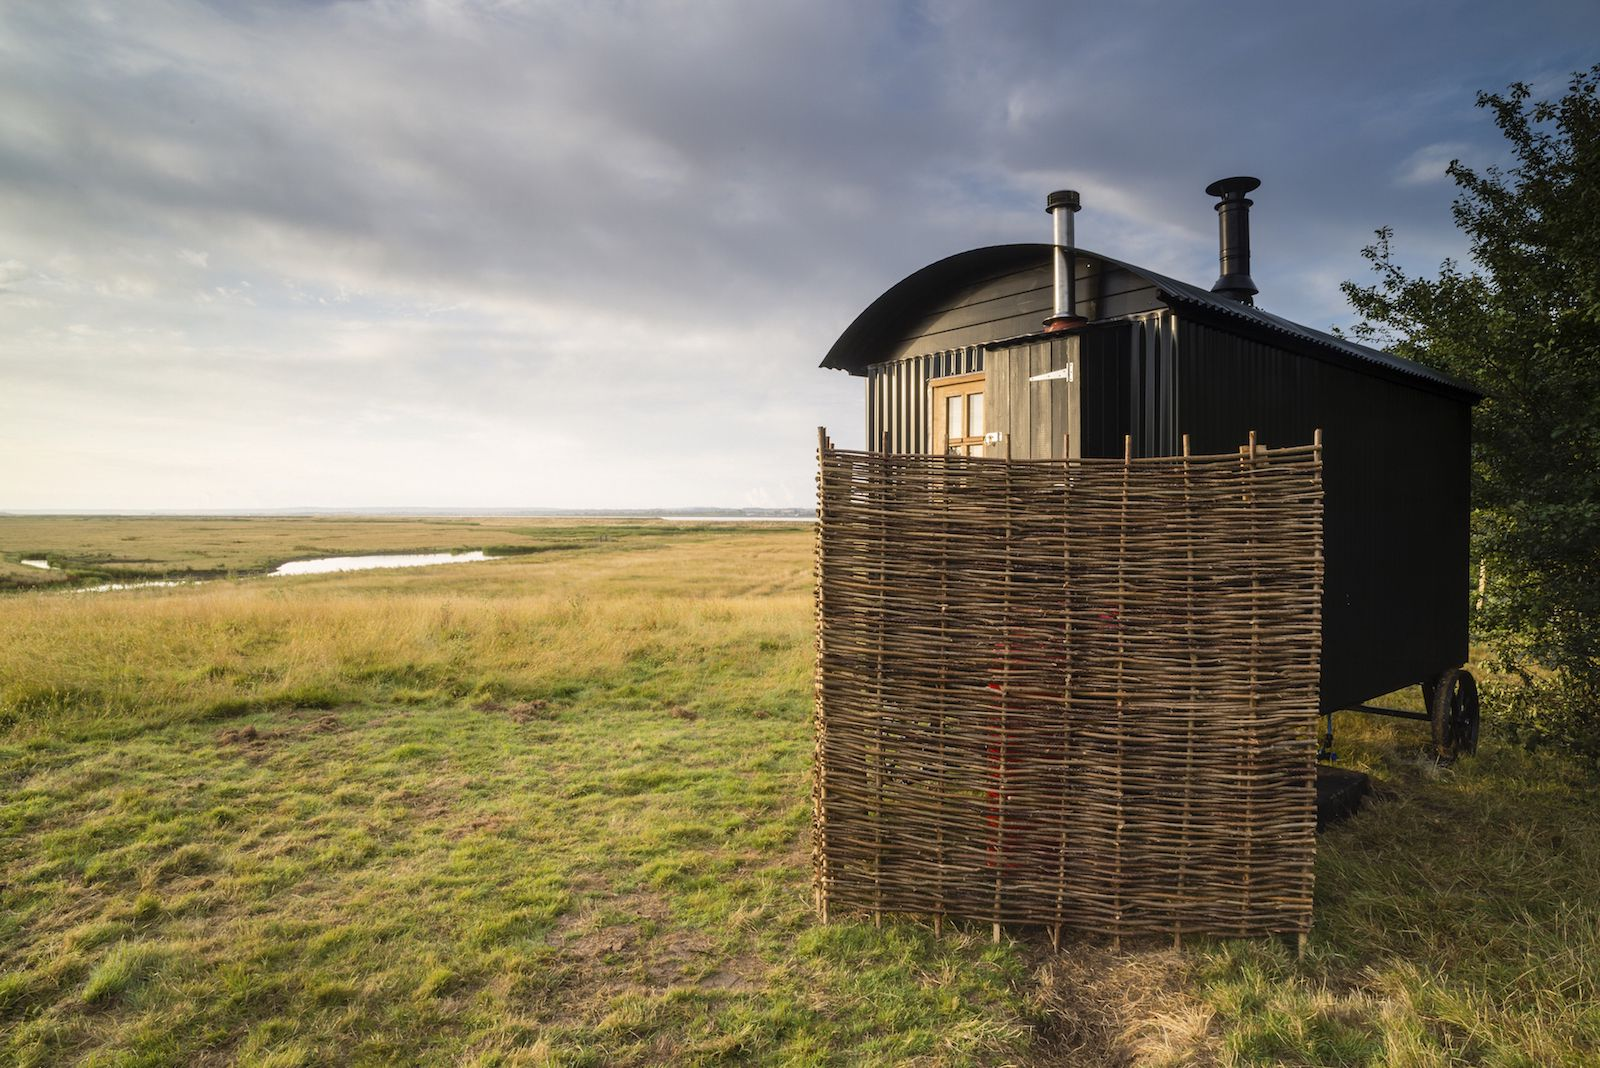 With spectacular landscapes, soul-stirring skies and breathtaking wildlife, Elmley National Nature Reserve is an inspirational place to visit just one hour from London.   © Rebecca Douglas and Robert Canis